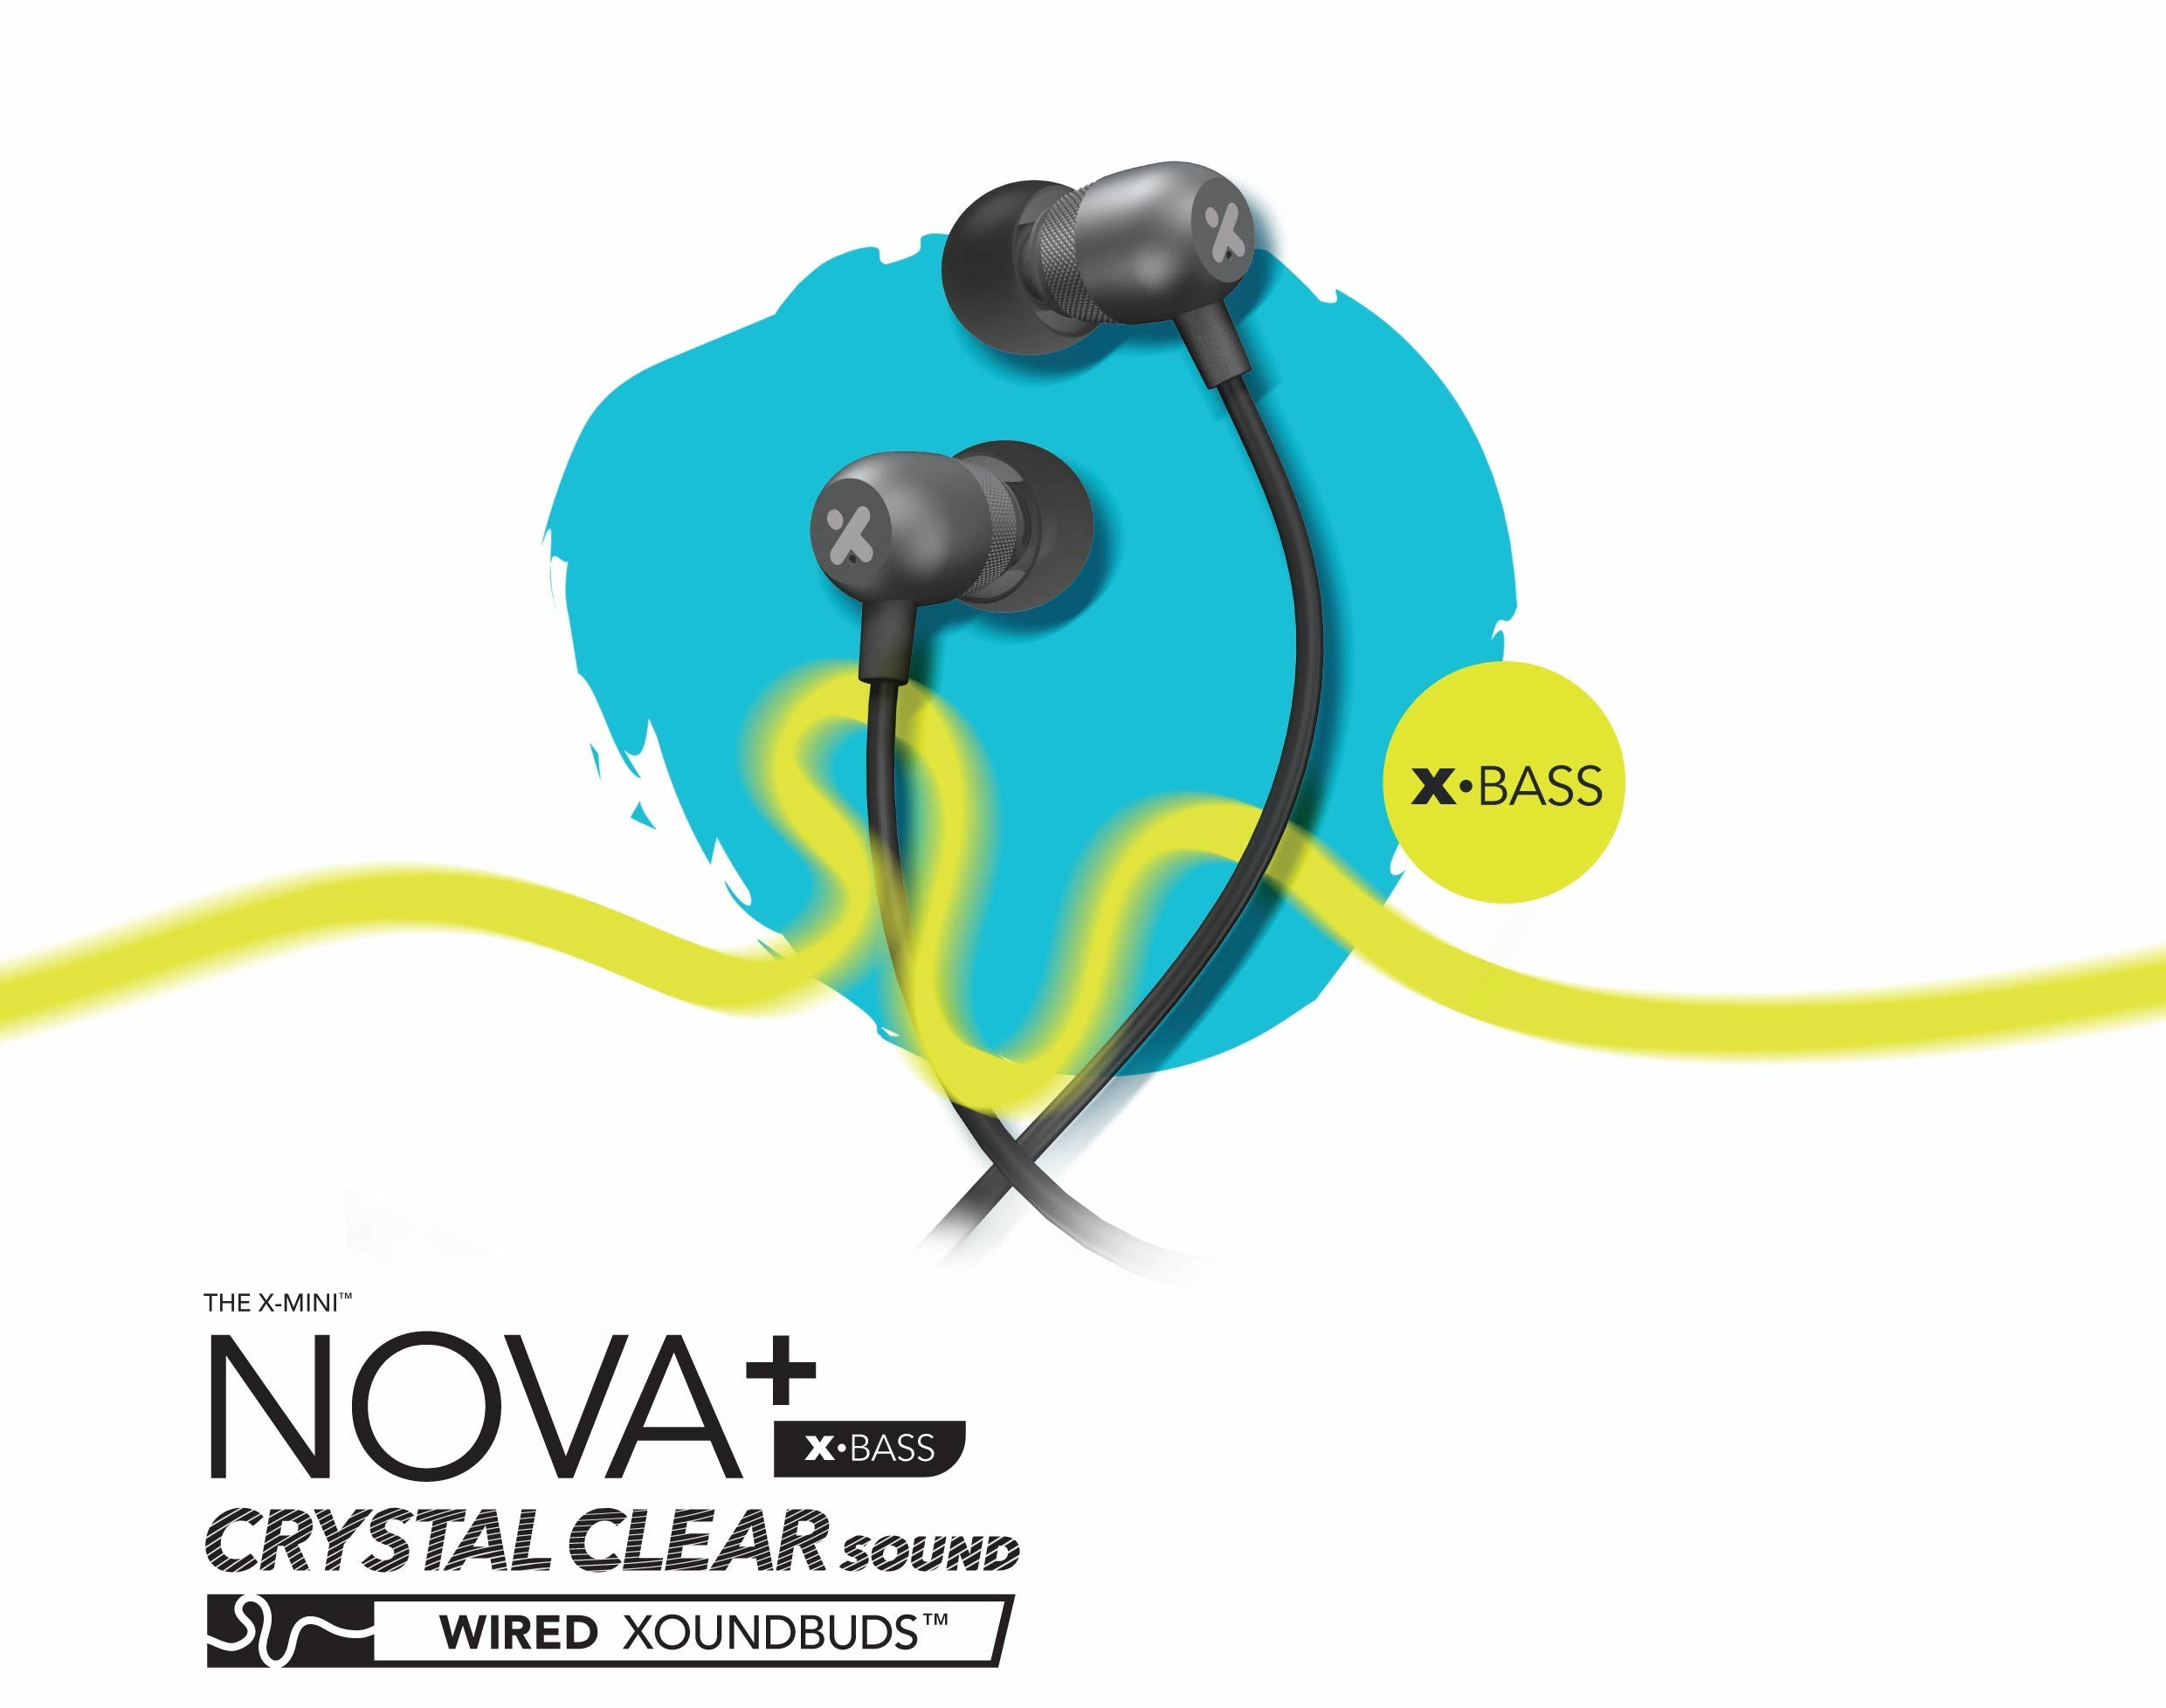 X-mini-NOVA_-Xoundbuds-Crystal-Clear-Sound-Wired-Xoundbuds